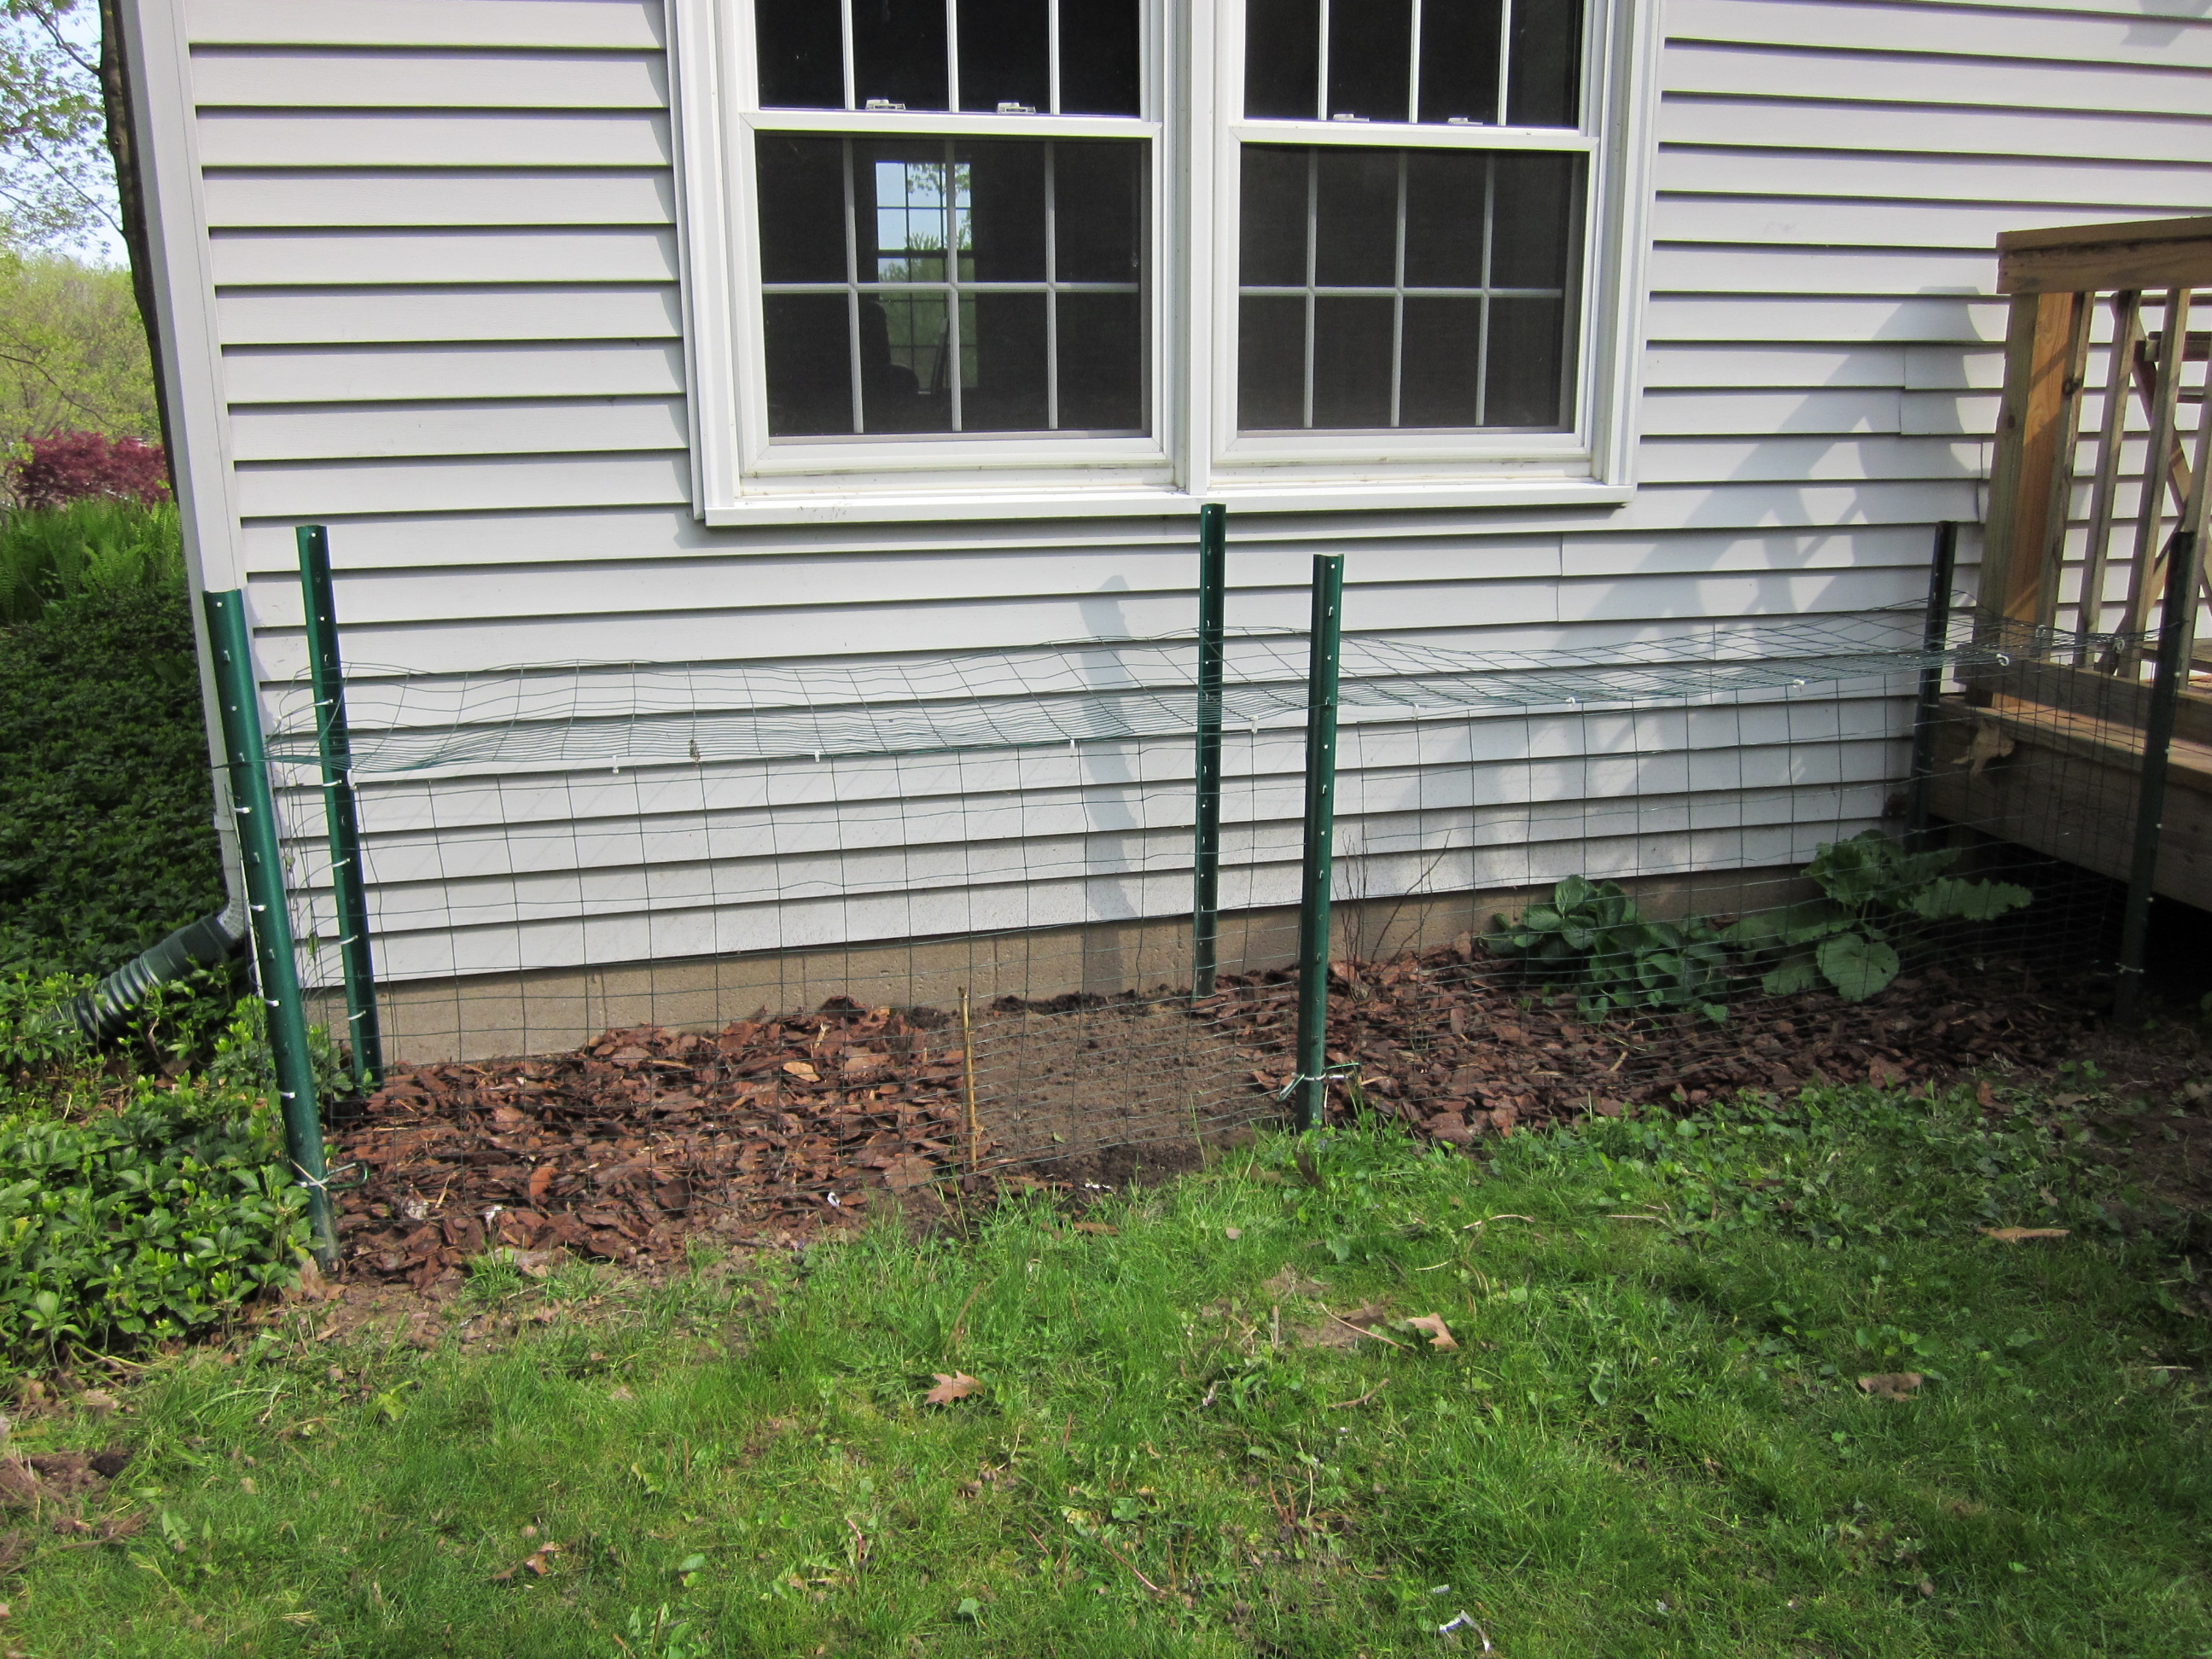 deerproof vegetable garden